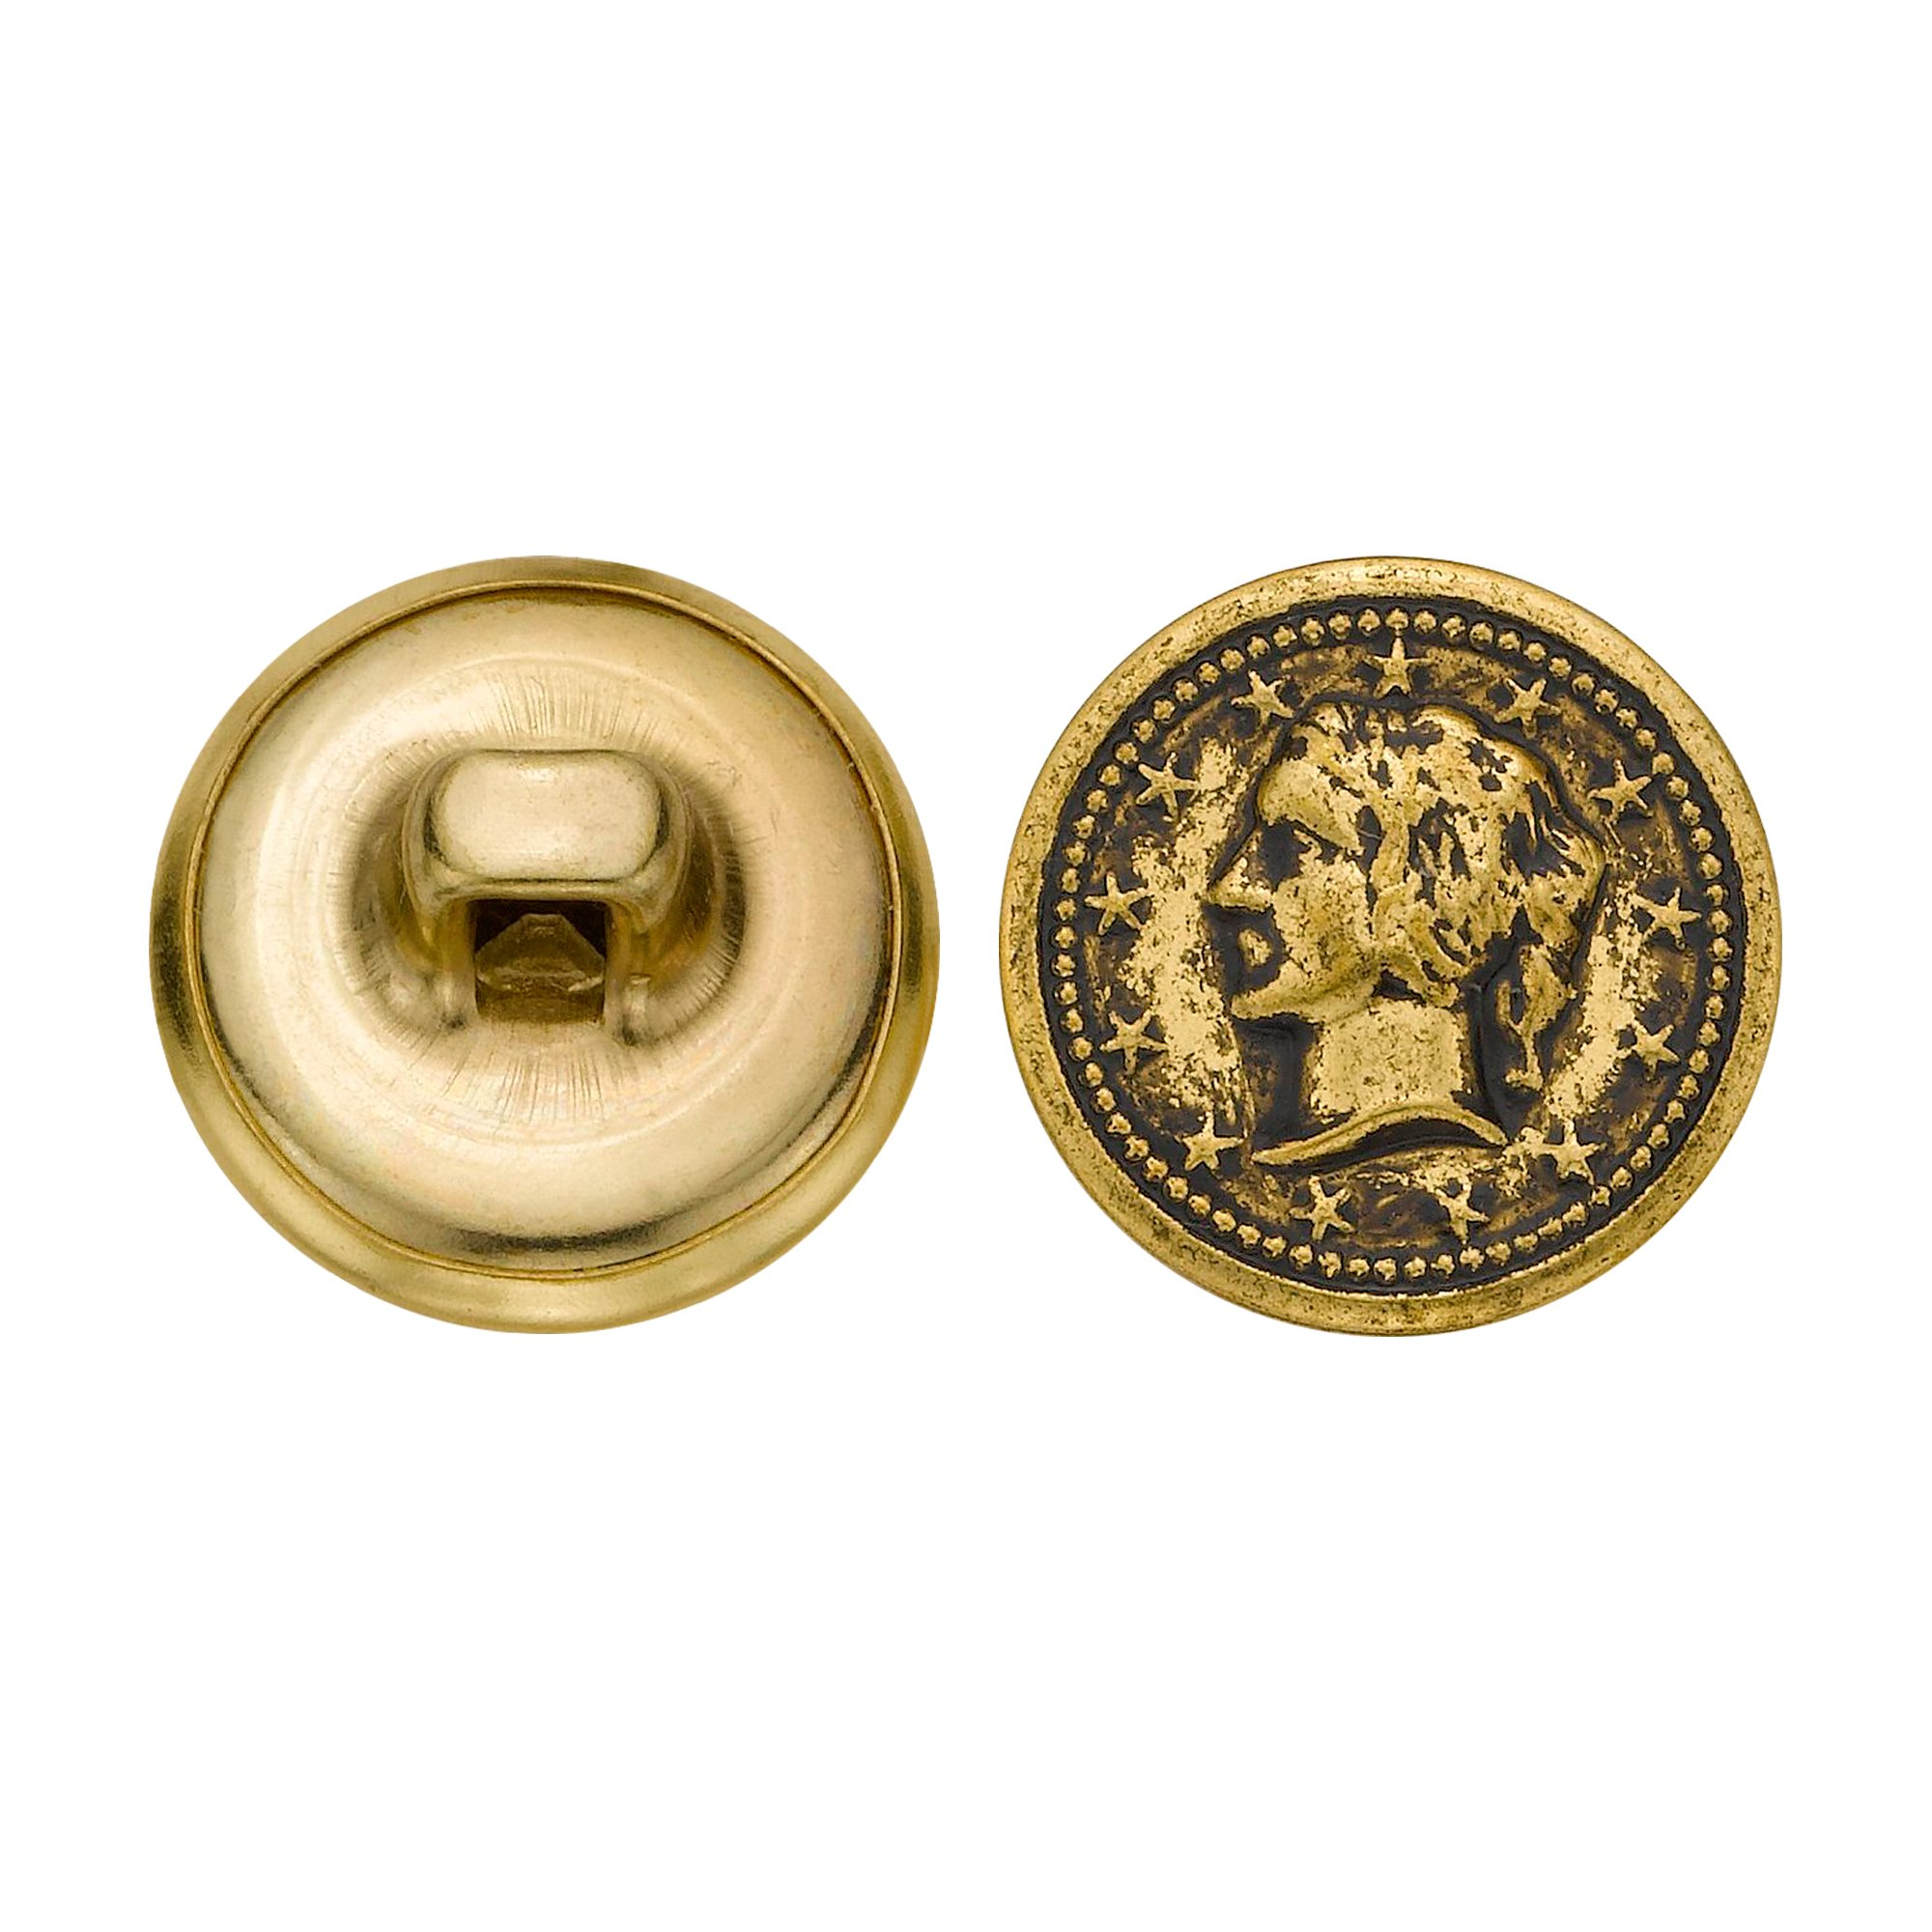 C&C Metal Products 5328 Lady Head Coin Metal Button, Size 24 Ligne, Antique Gold, 72-Pack